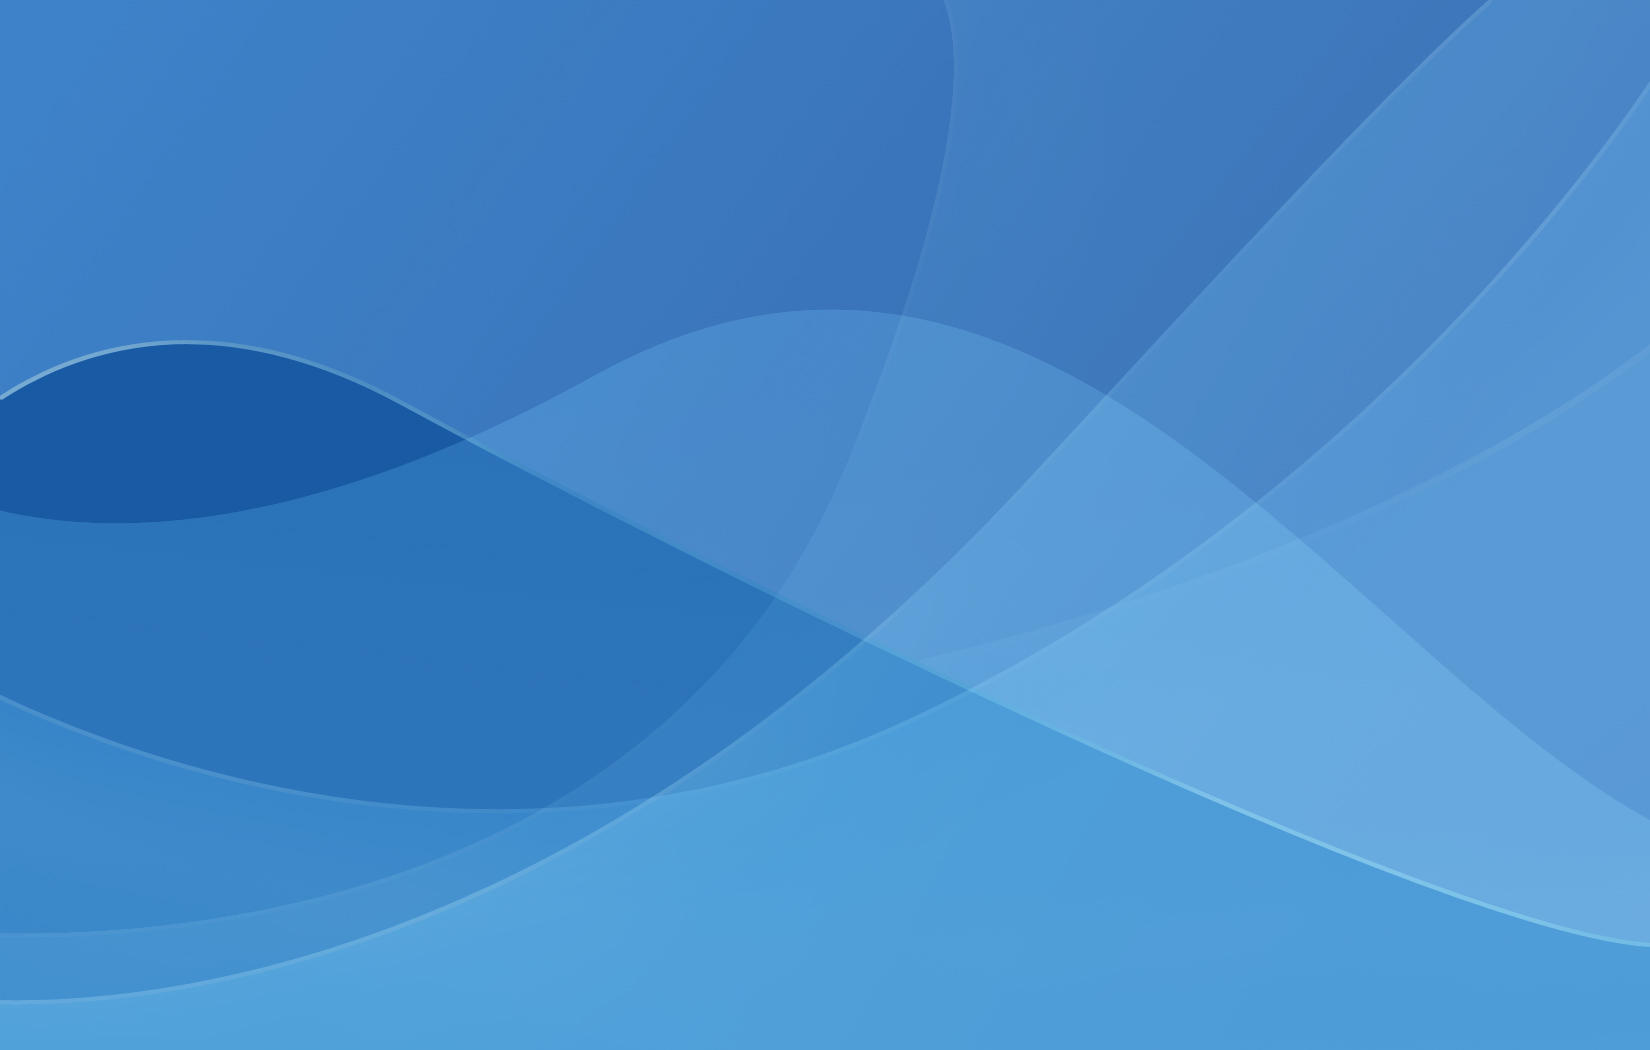 Mac OS X style wallpaper by Snowpilot